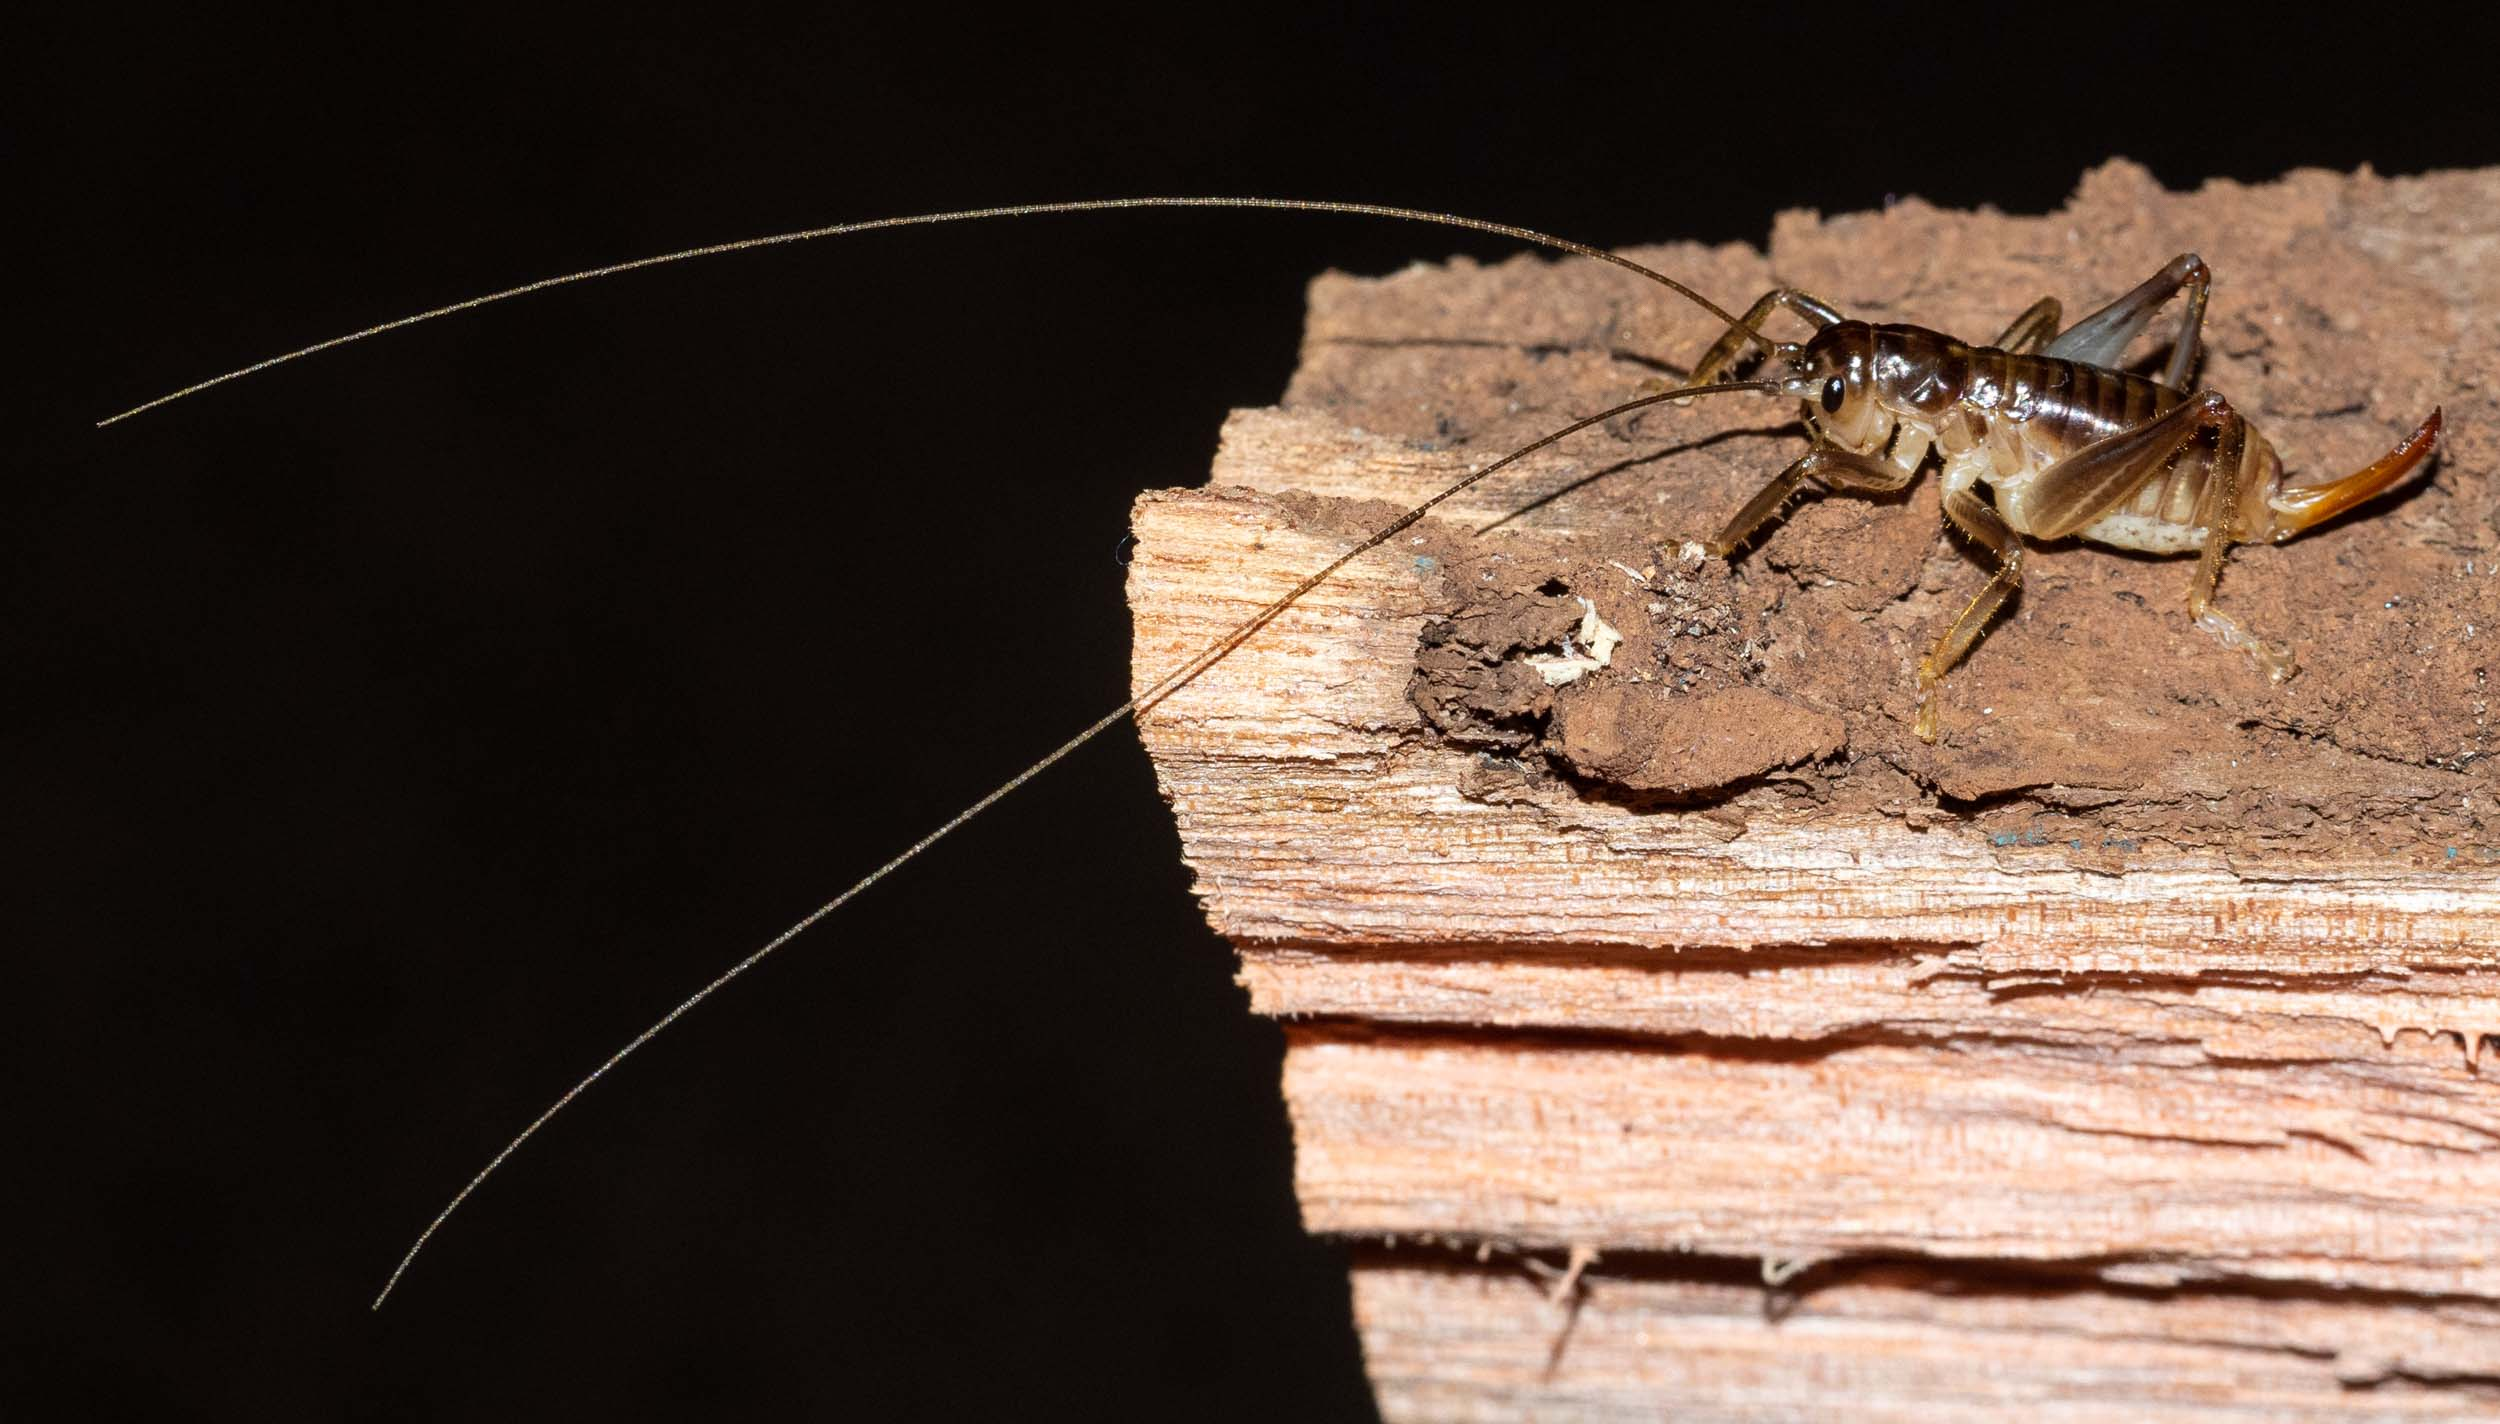 The cricket displays its massively long antennae and its ovipositor